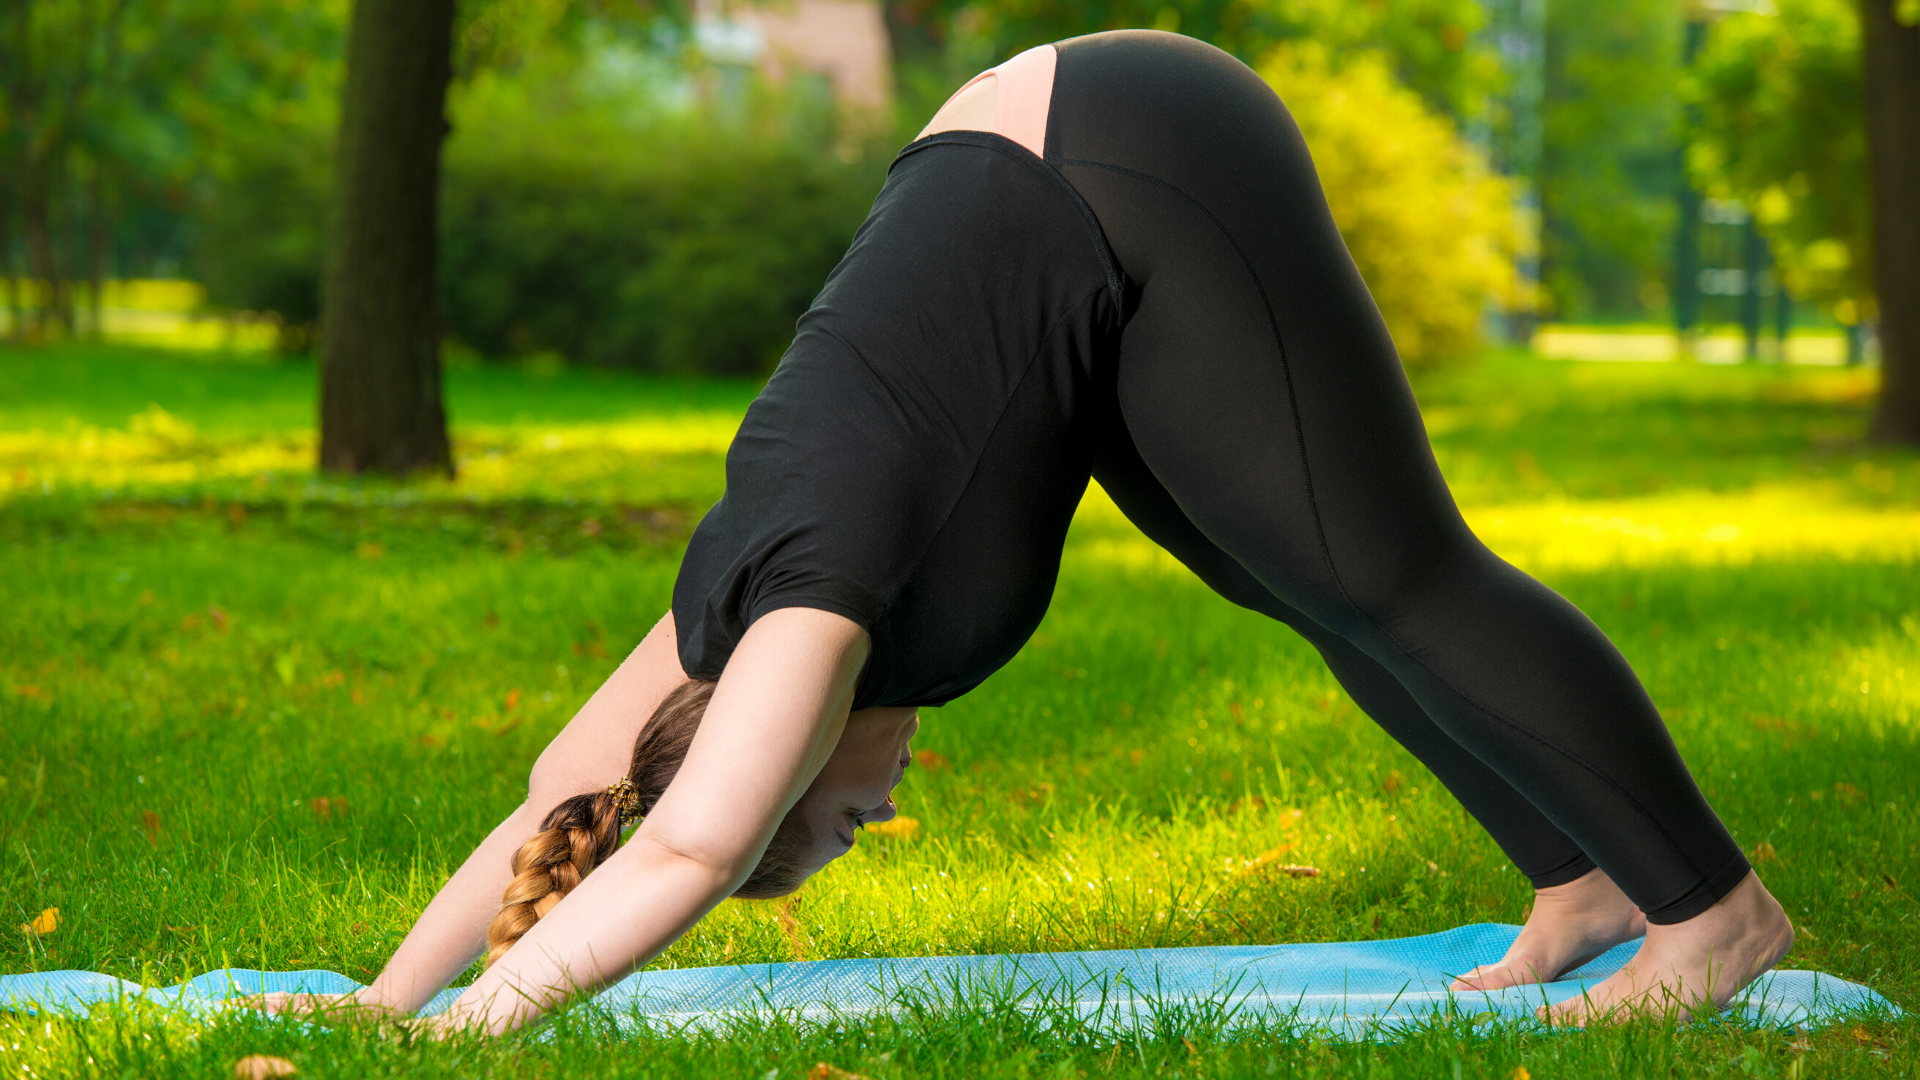 Downward Facing Dog Pose (Adho Mukha Svanasana) yoga for neck